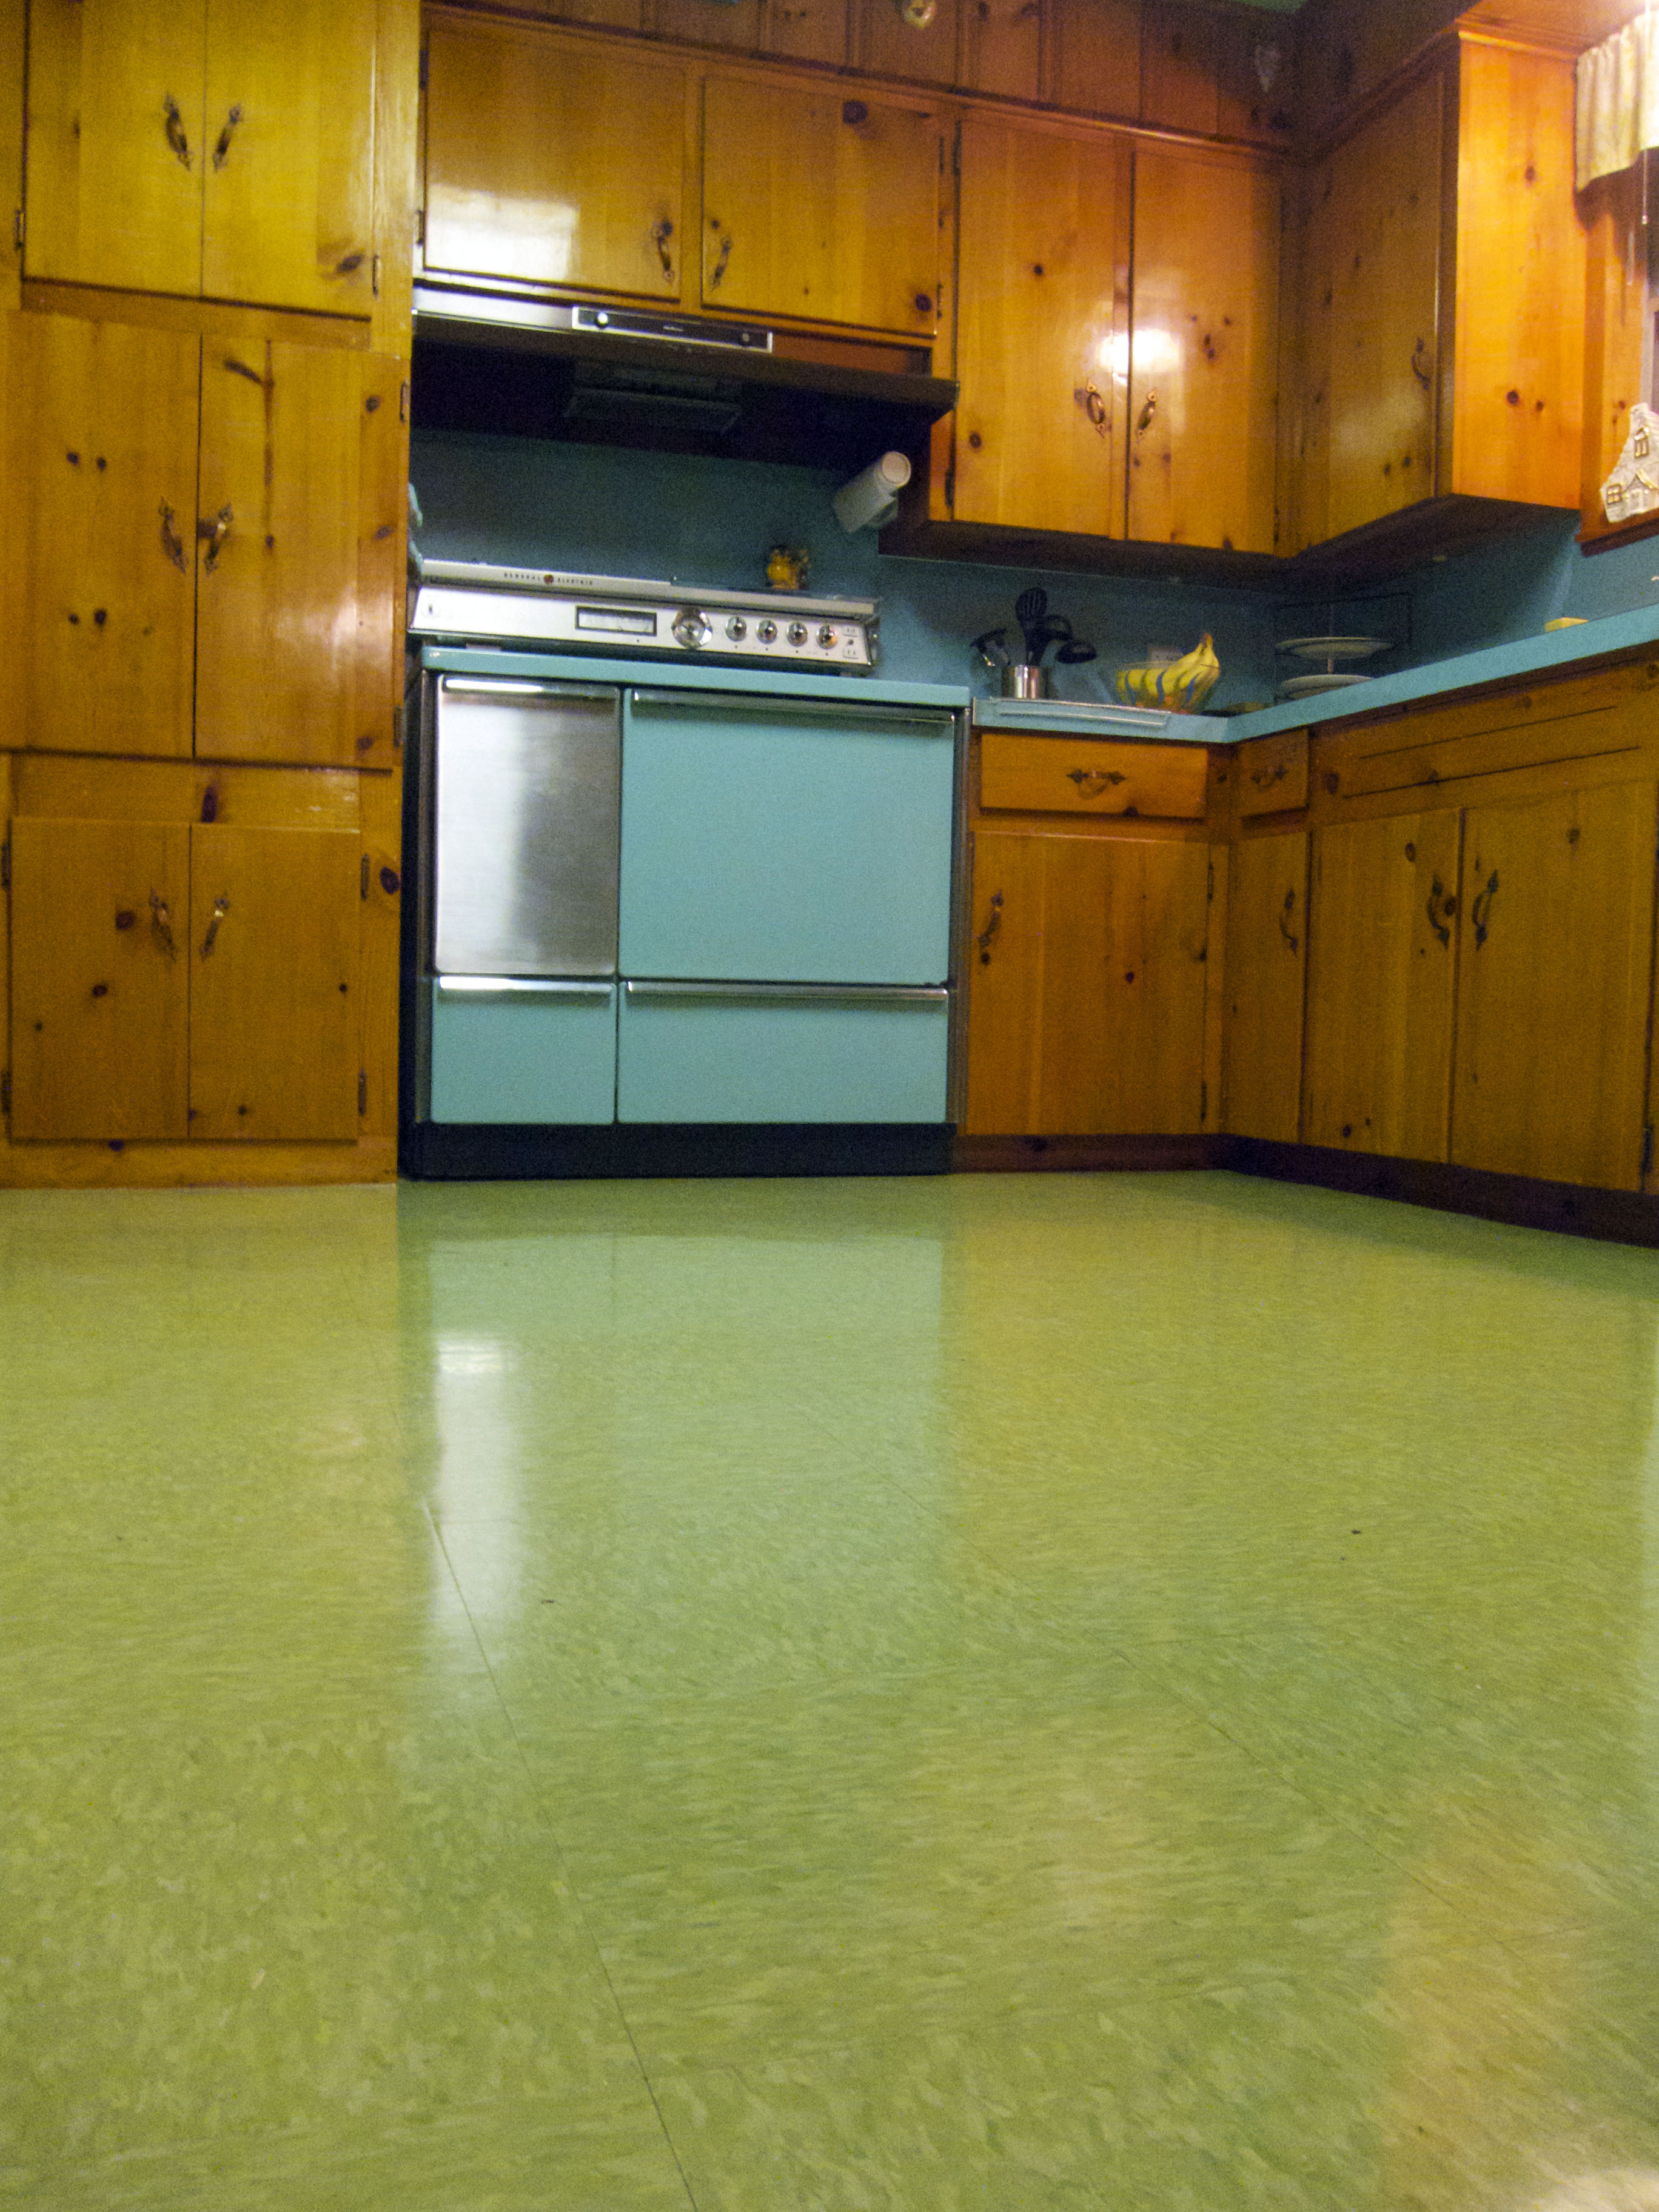 Vct Kitchen Floor February 2012 Betty Crafter